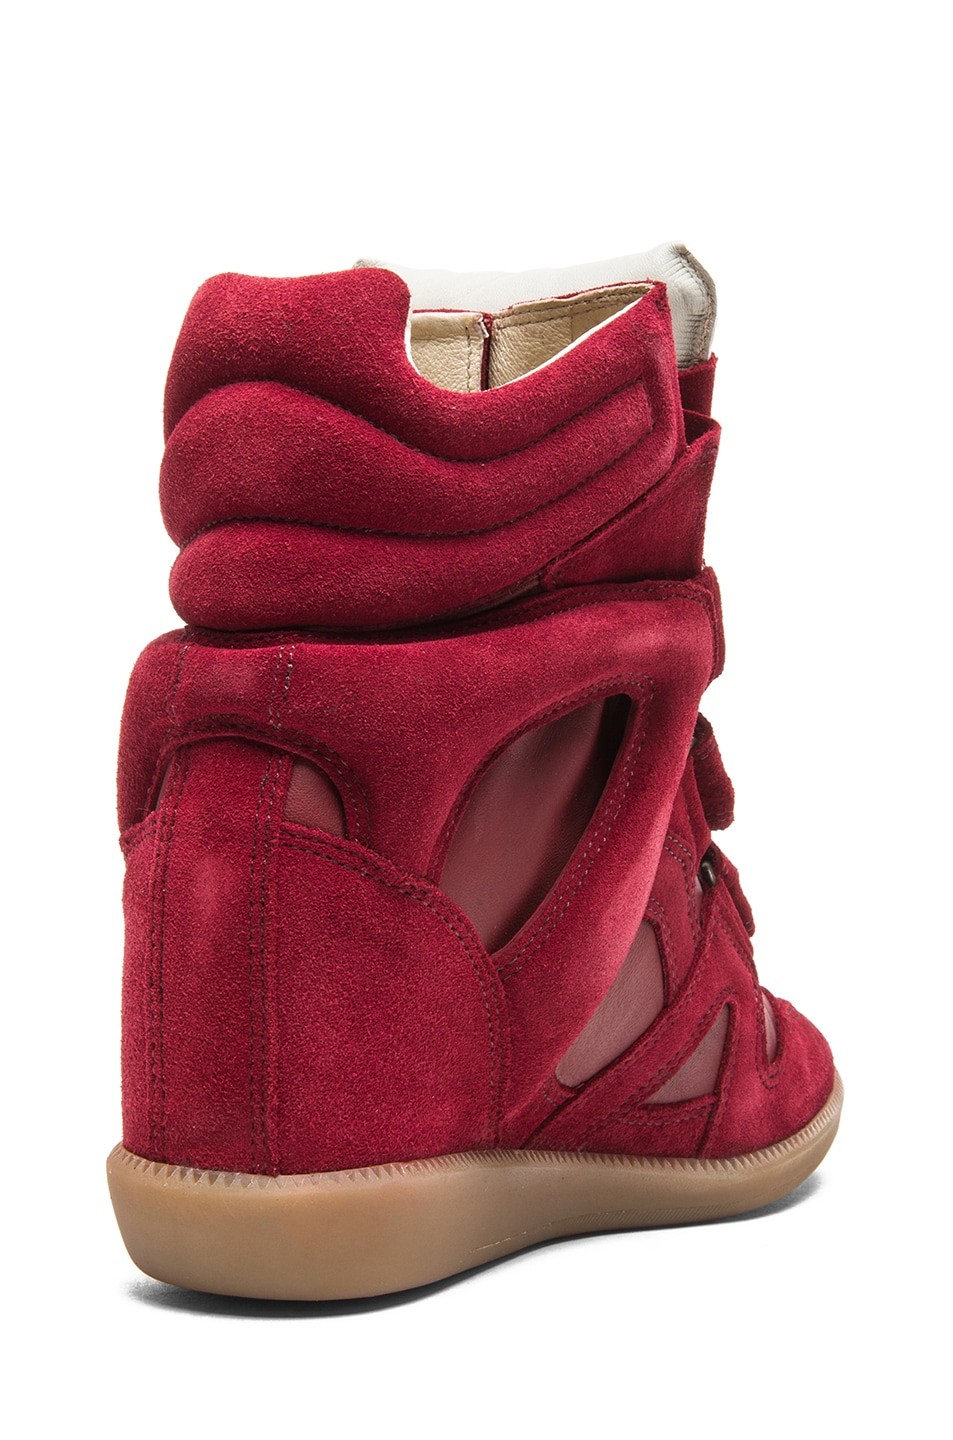 Image 3 of Isabel Marant Burt Calfskin Velvet Leather Sneakers in Burgundy